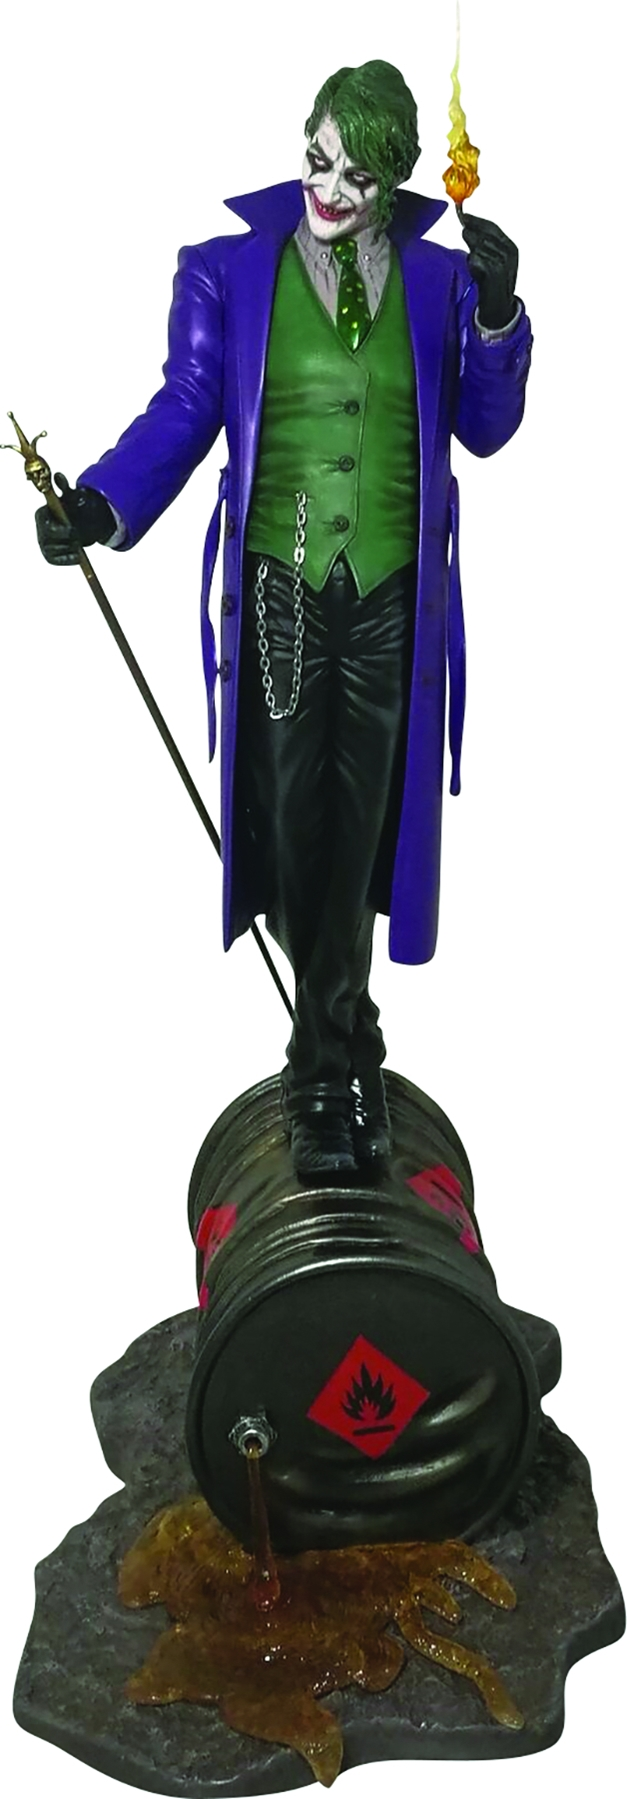 FFG DC COMICS COLLECTION: THE JOKER 1/6 RESIN STATUE (Damaged Box)